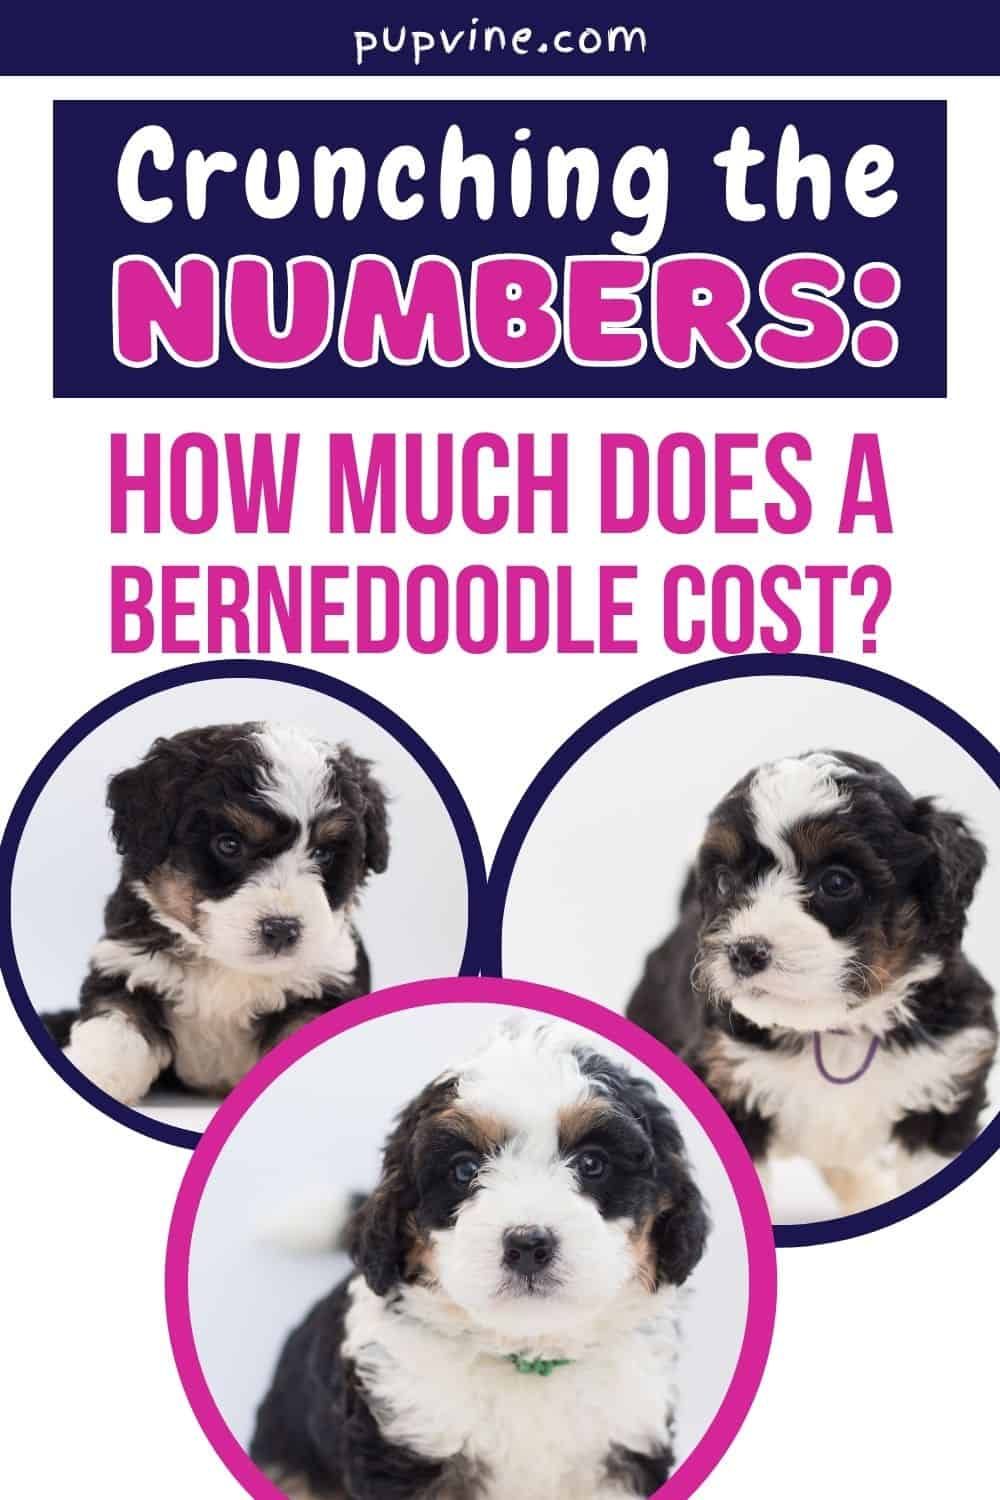 Crunching The Numbers: How Much Does A Bernedoodle Cost?